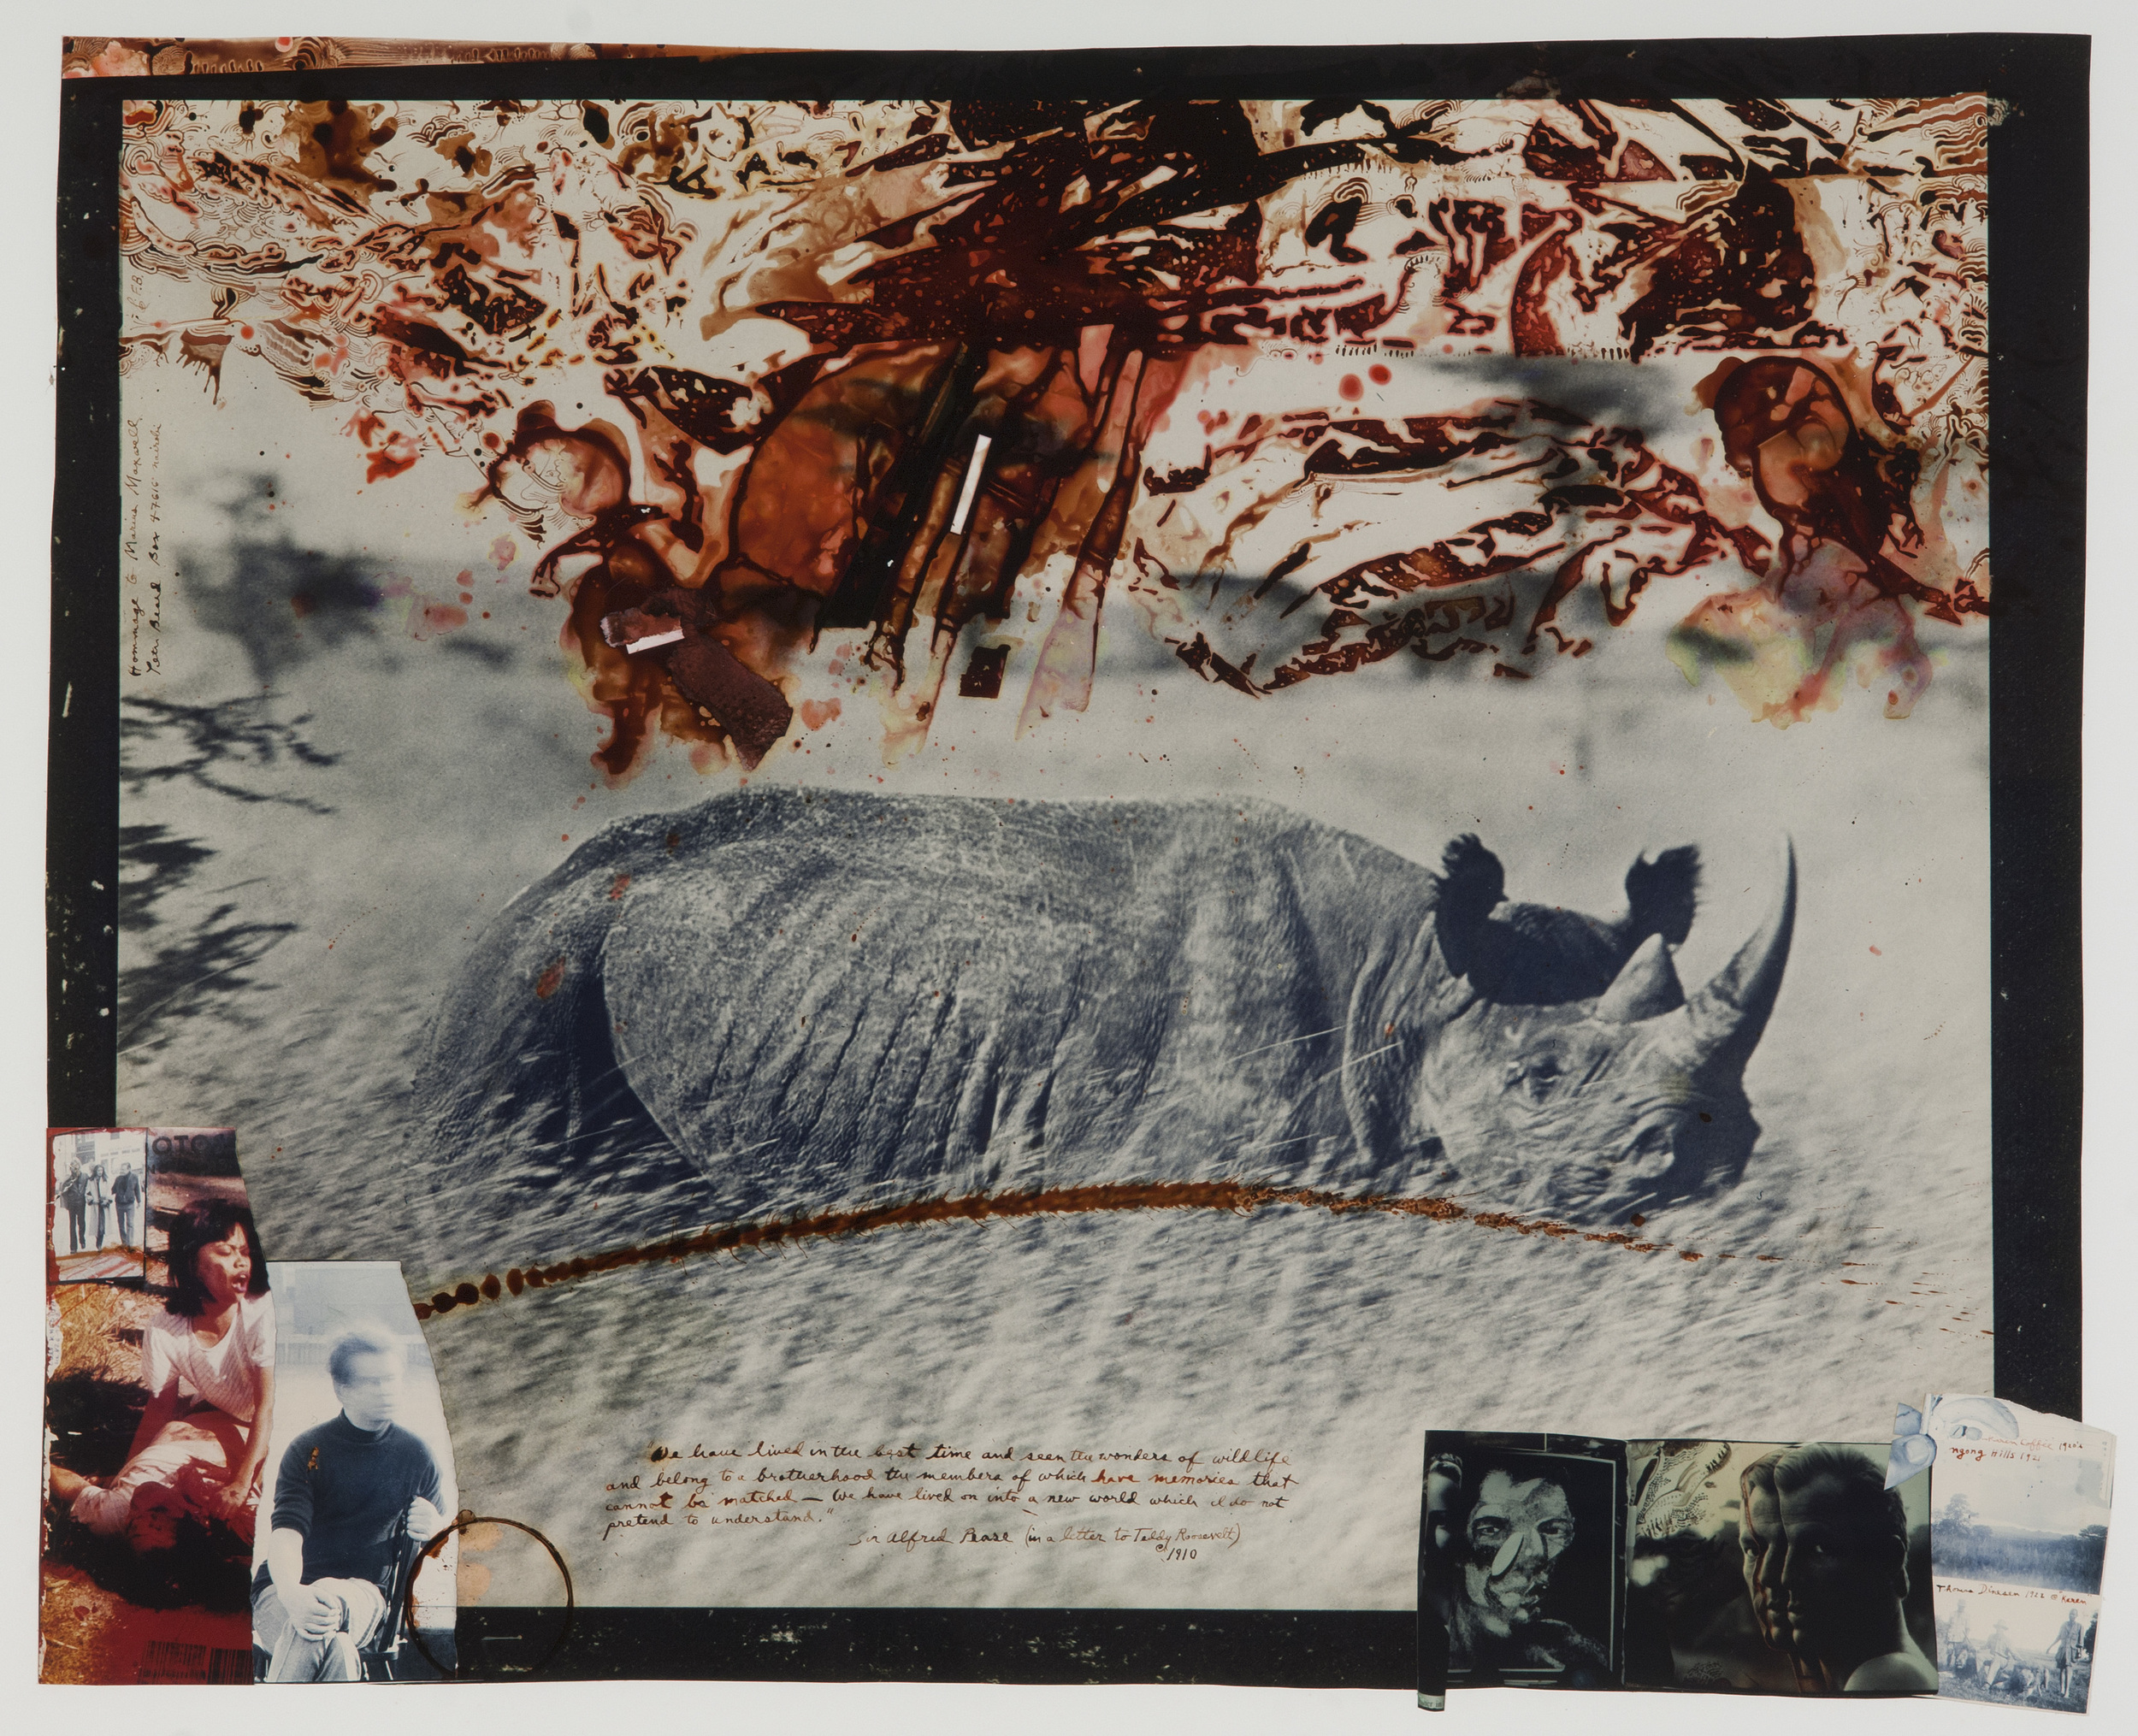 PETER BEARD (American, b. 1938) Hommage to Marius Maxwell Gelatin silver print with inscriptions, collage, and blood 26 1/2 x 33 1/2 inches